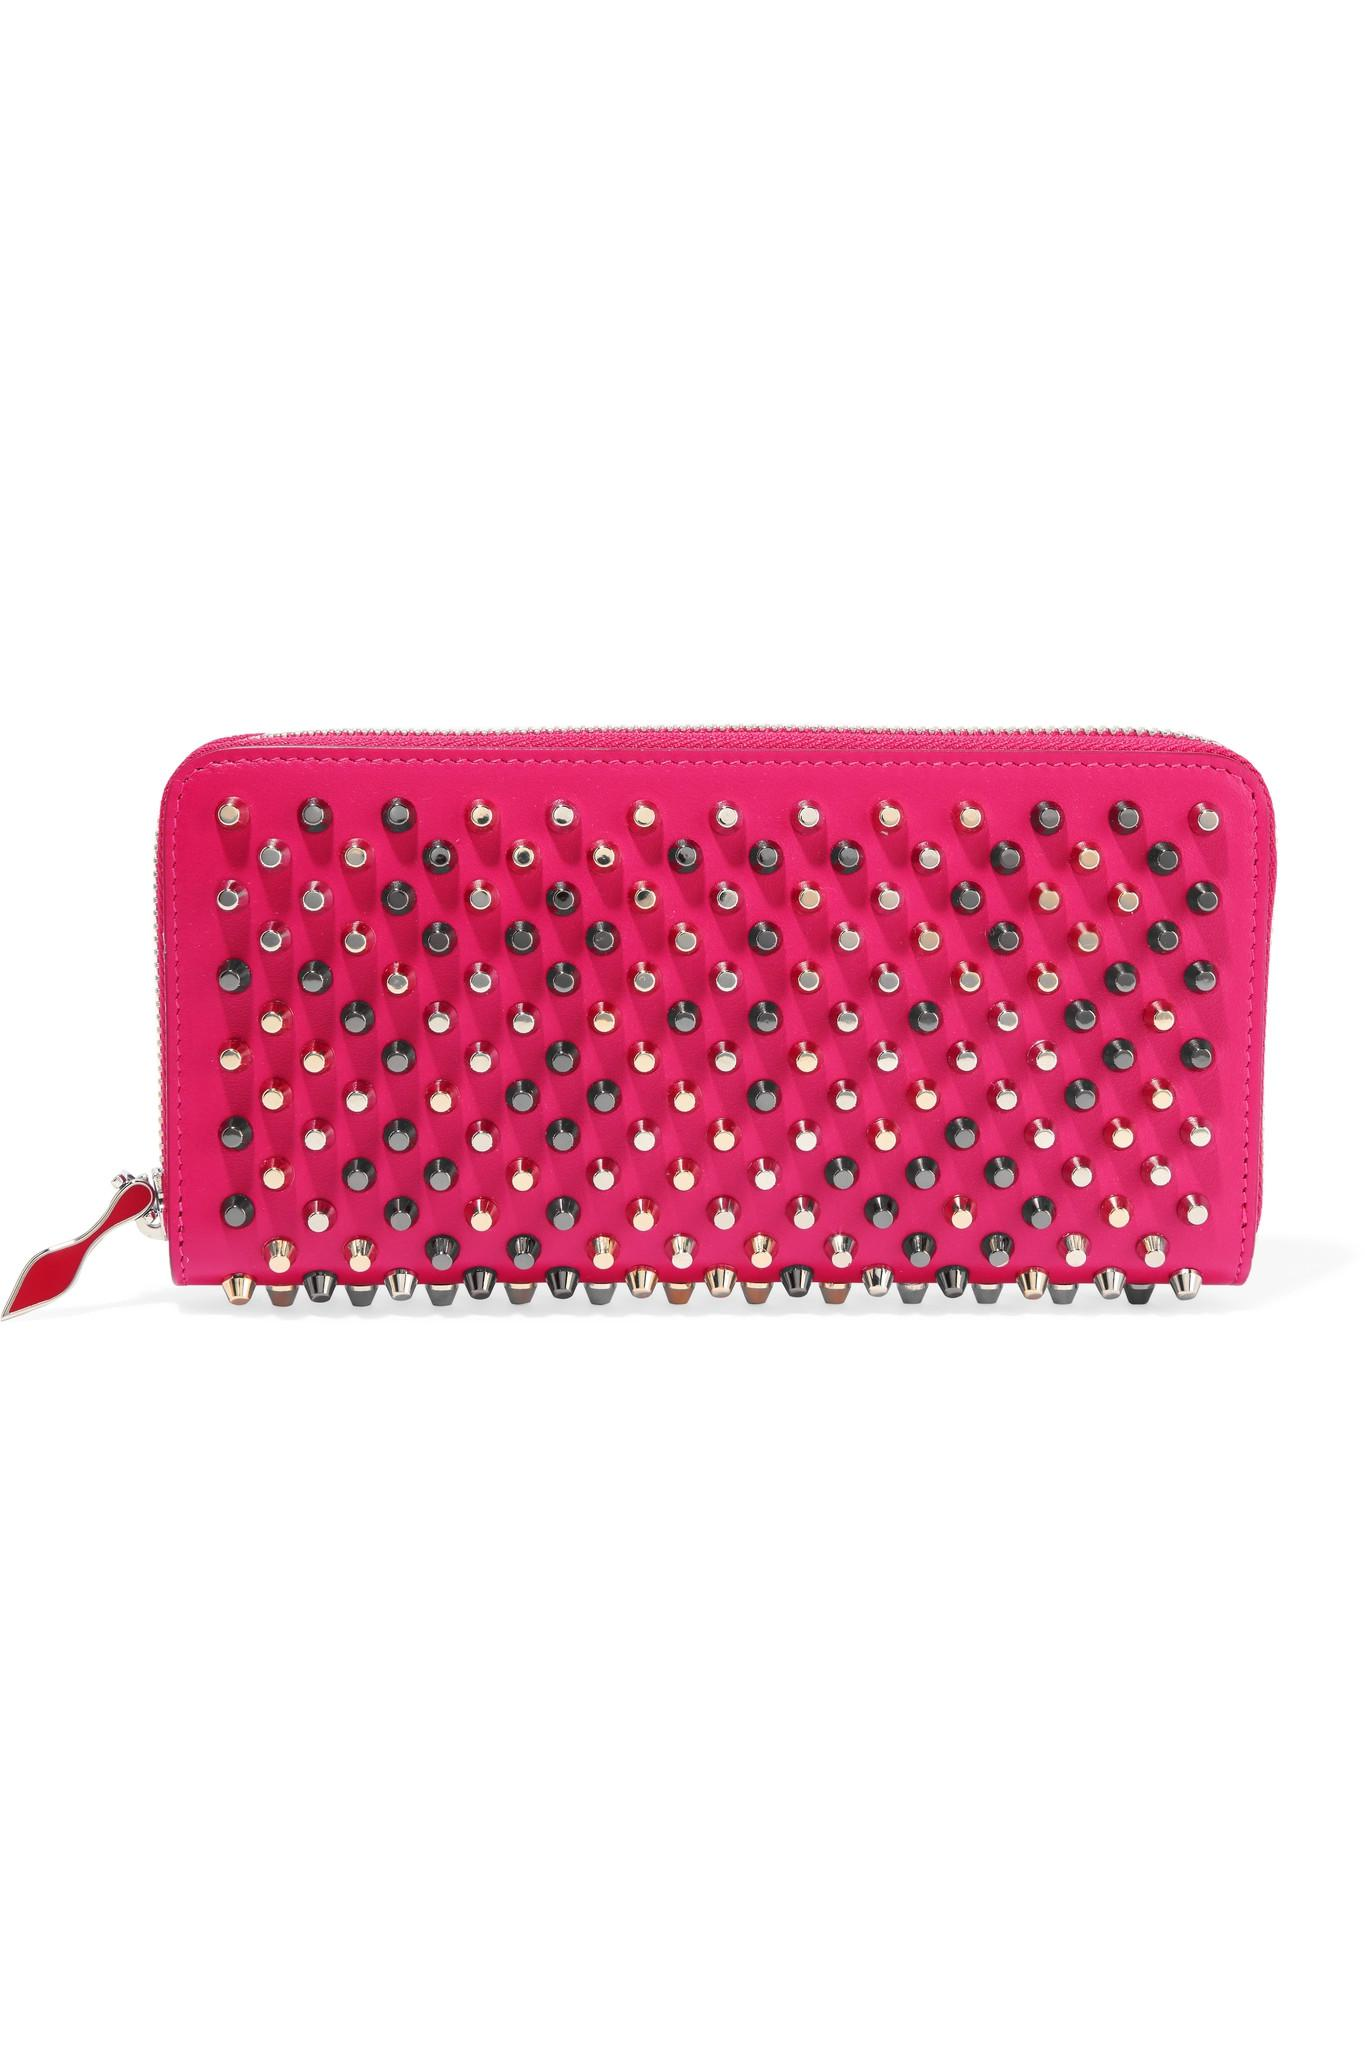 c112d59dbb Christian Louboutin. Women's Pink Panettone Studded Leather Continental  Wallet